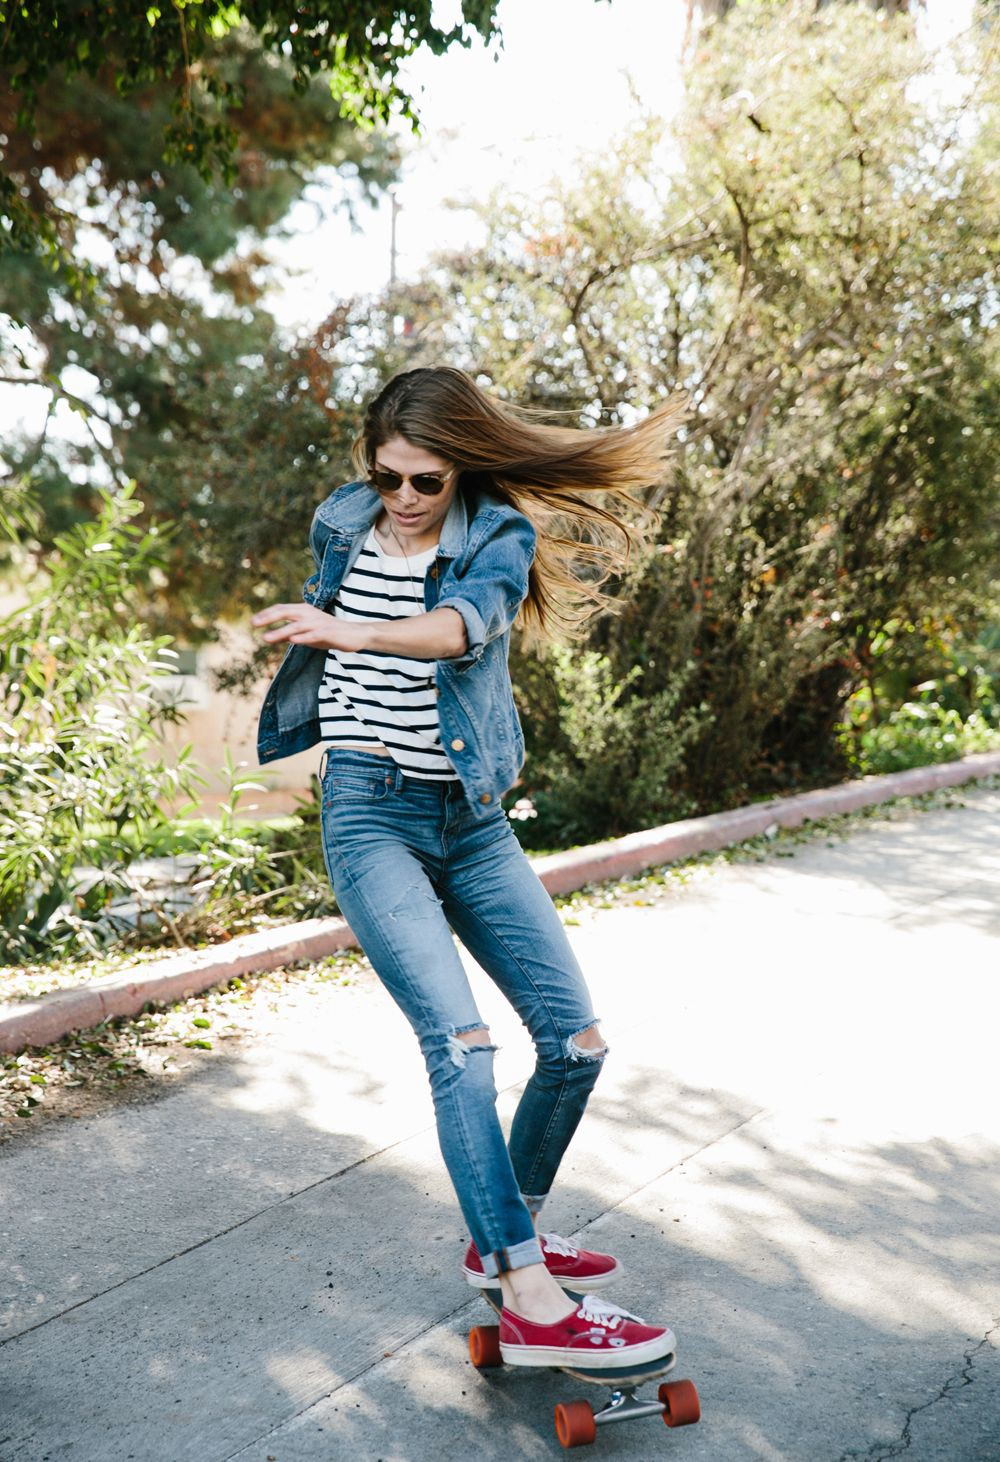 Jeans jacket girl with sneakers